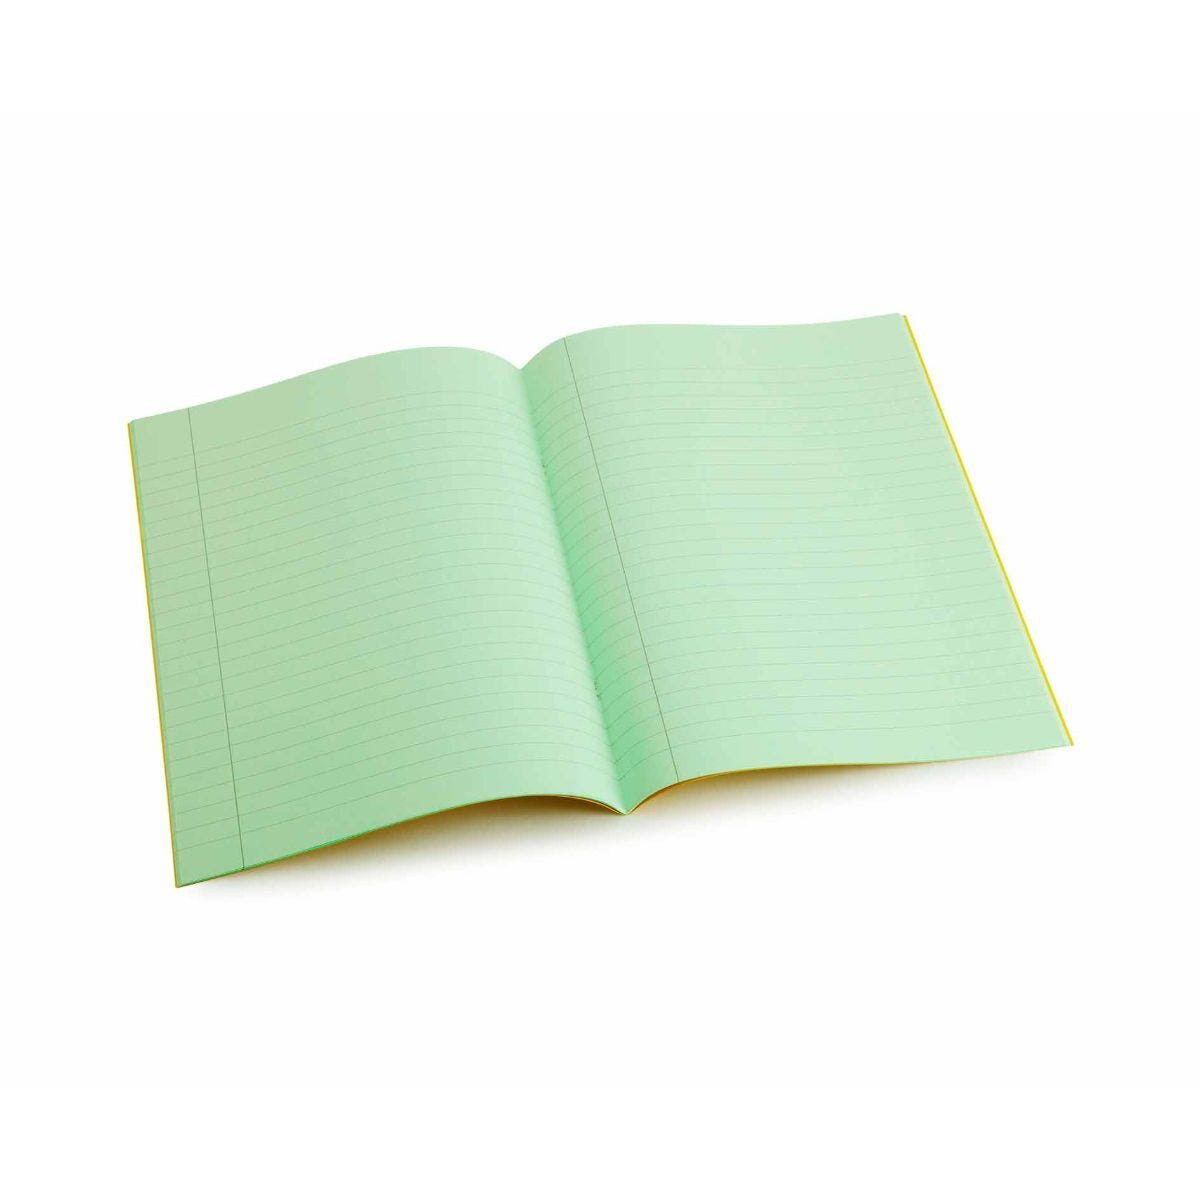 Tinted Exercise Books Lined A4 10mm Leaf Green